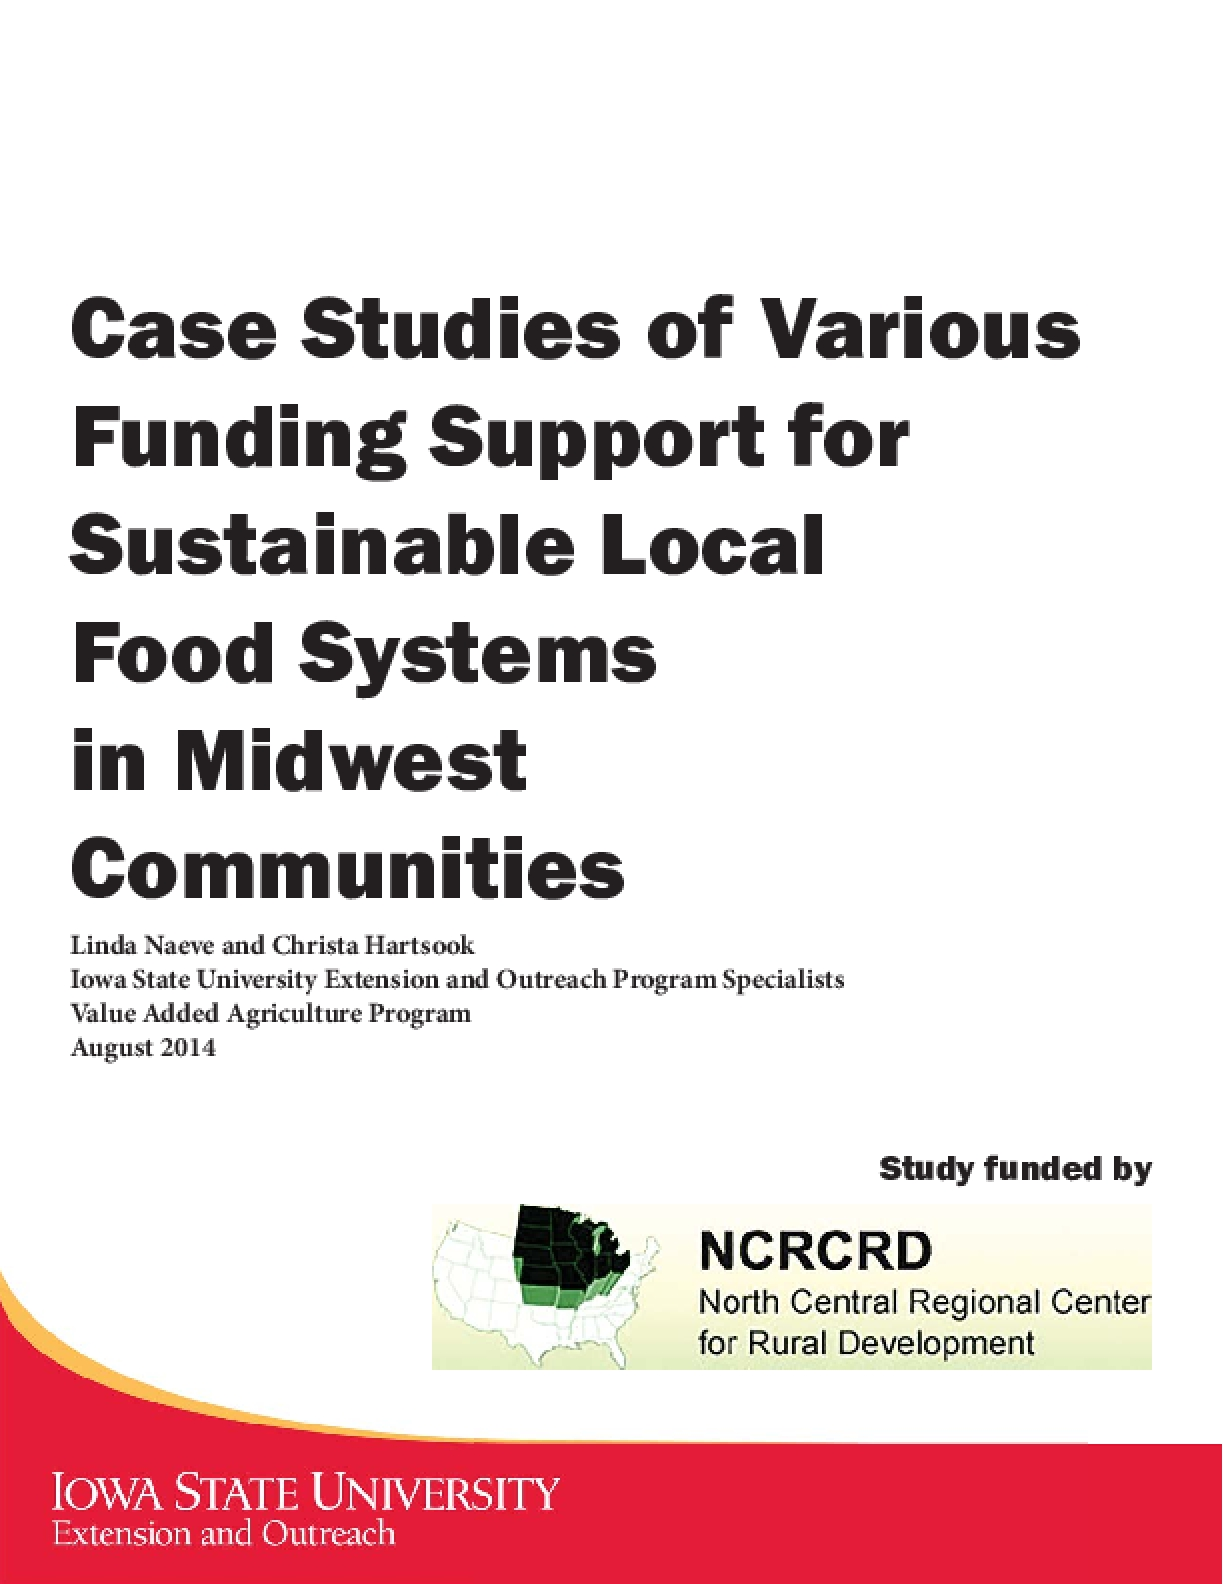 Case Studies of Various Funding Support for Sustainable Local Food Systems in Midwest Communities